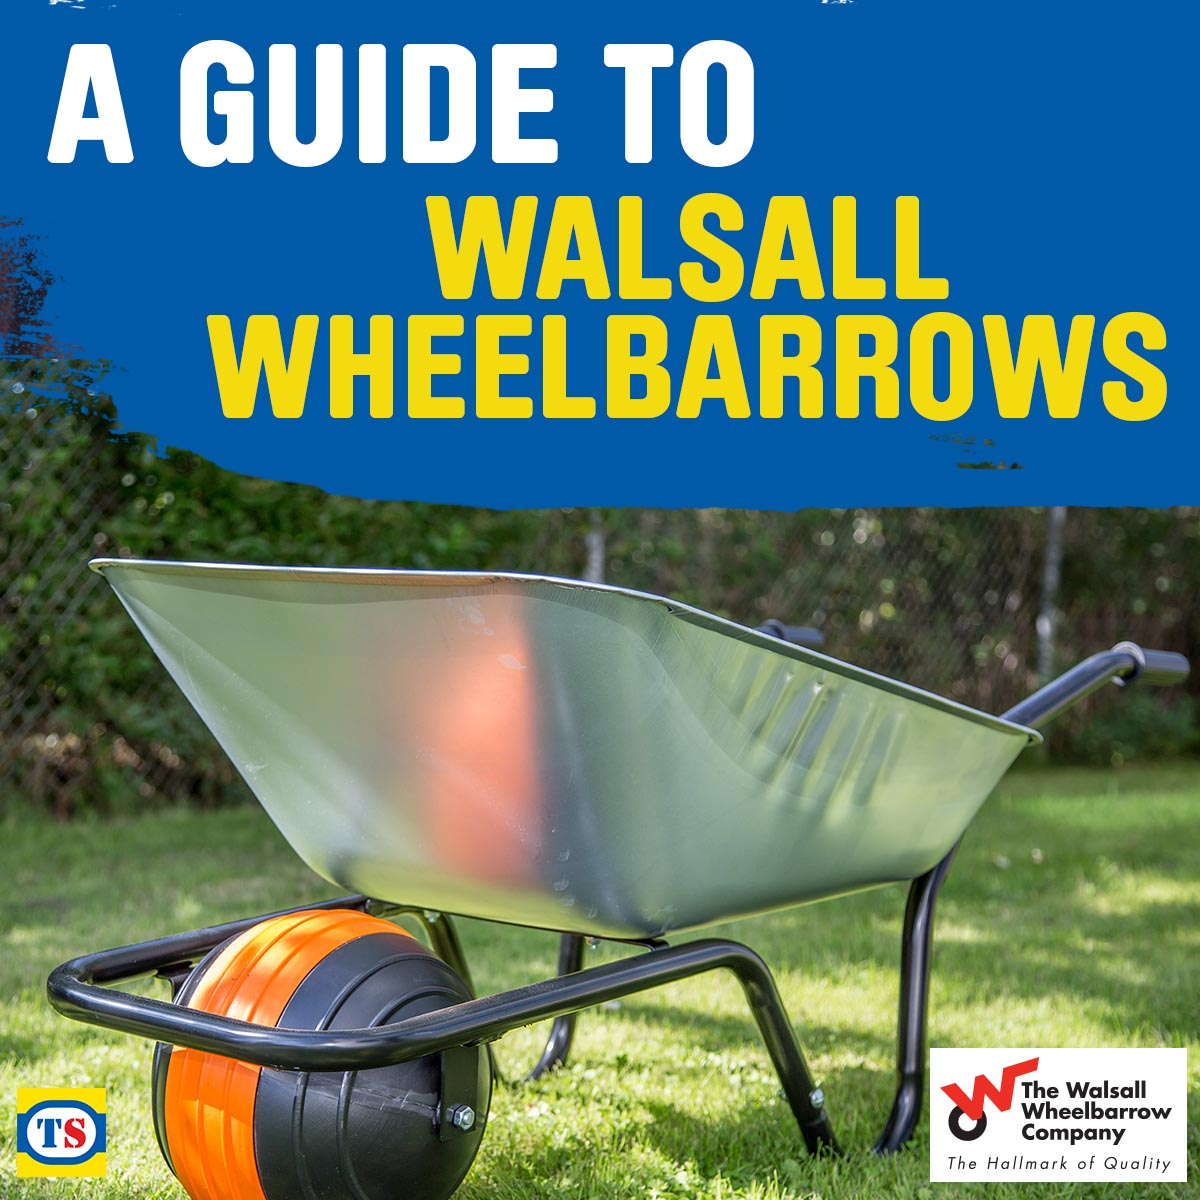 A Guide to Our New Range of Walsall Wheelbarrows